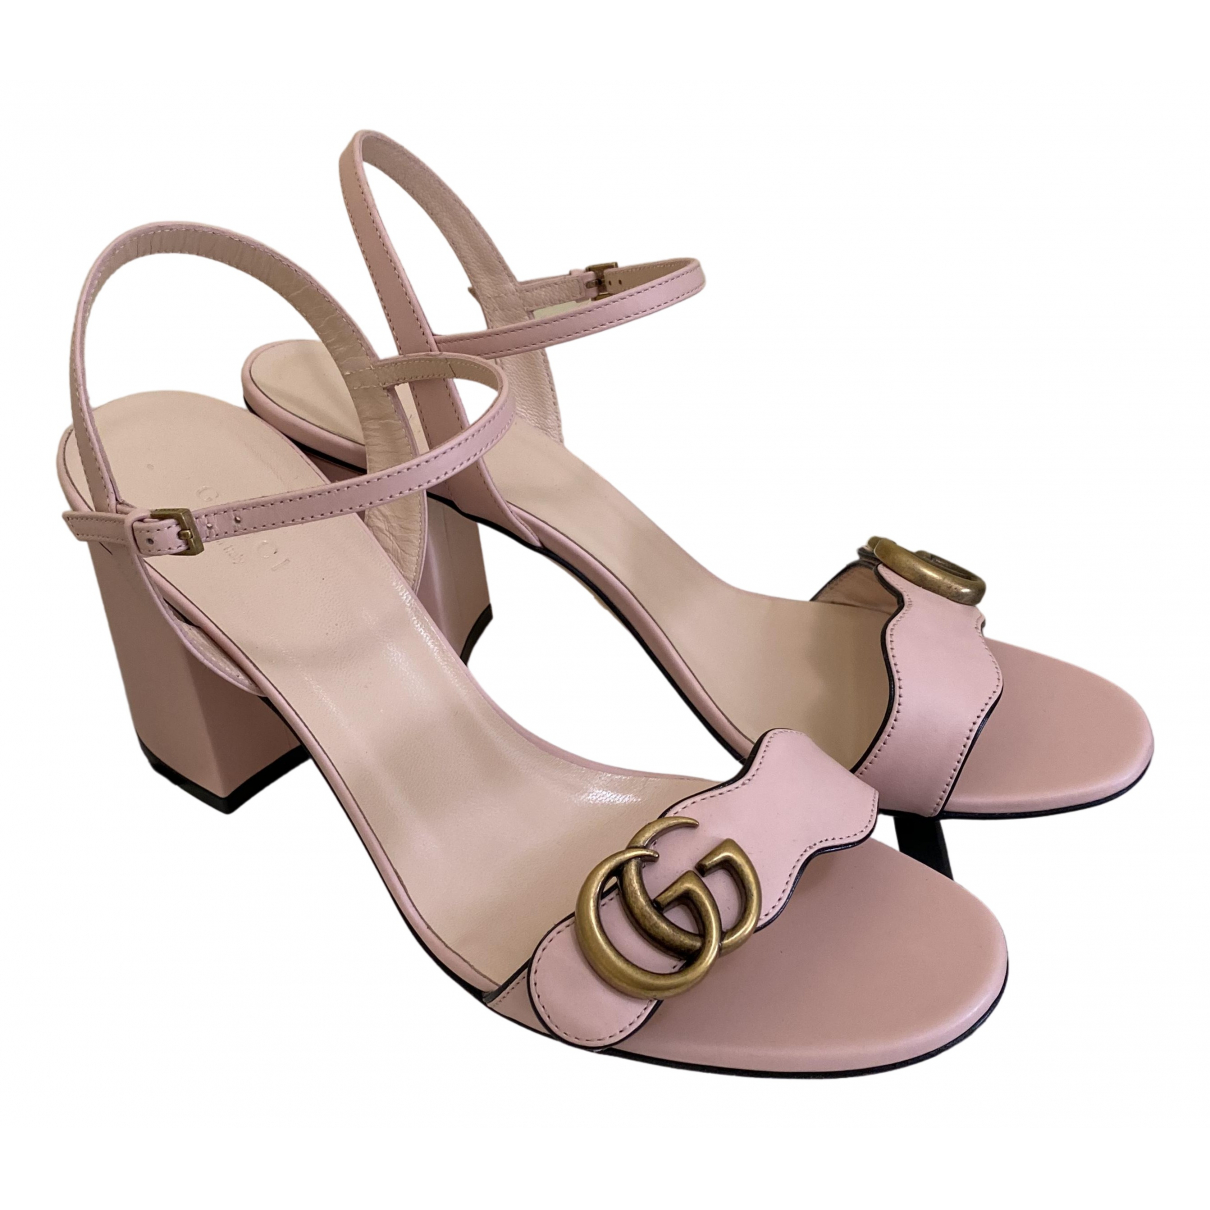 Gucci Marmont Pink Leather Sandals for Women 40 IT